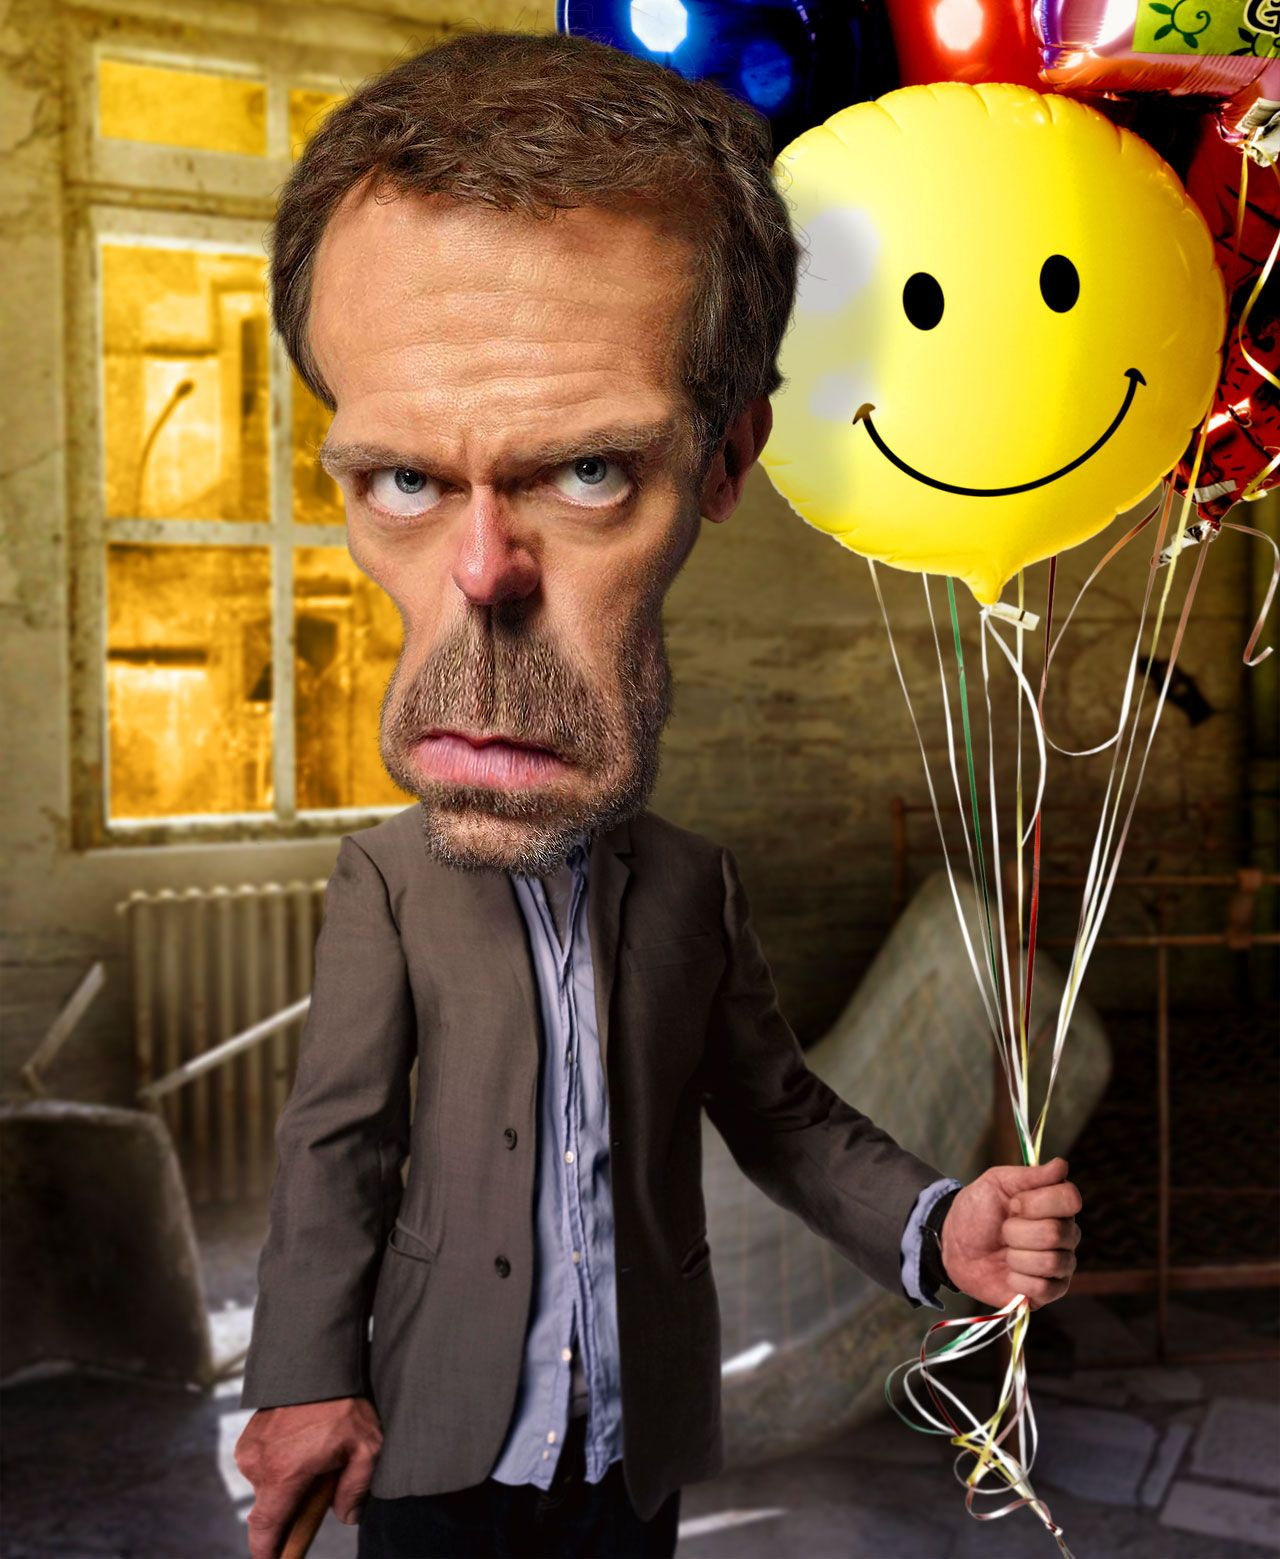 HouseMD (Hugh Laurie) caricatures